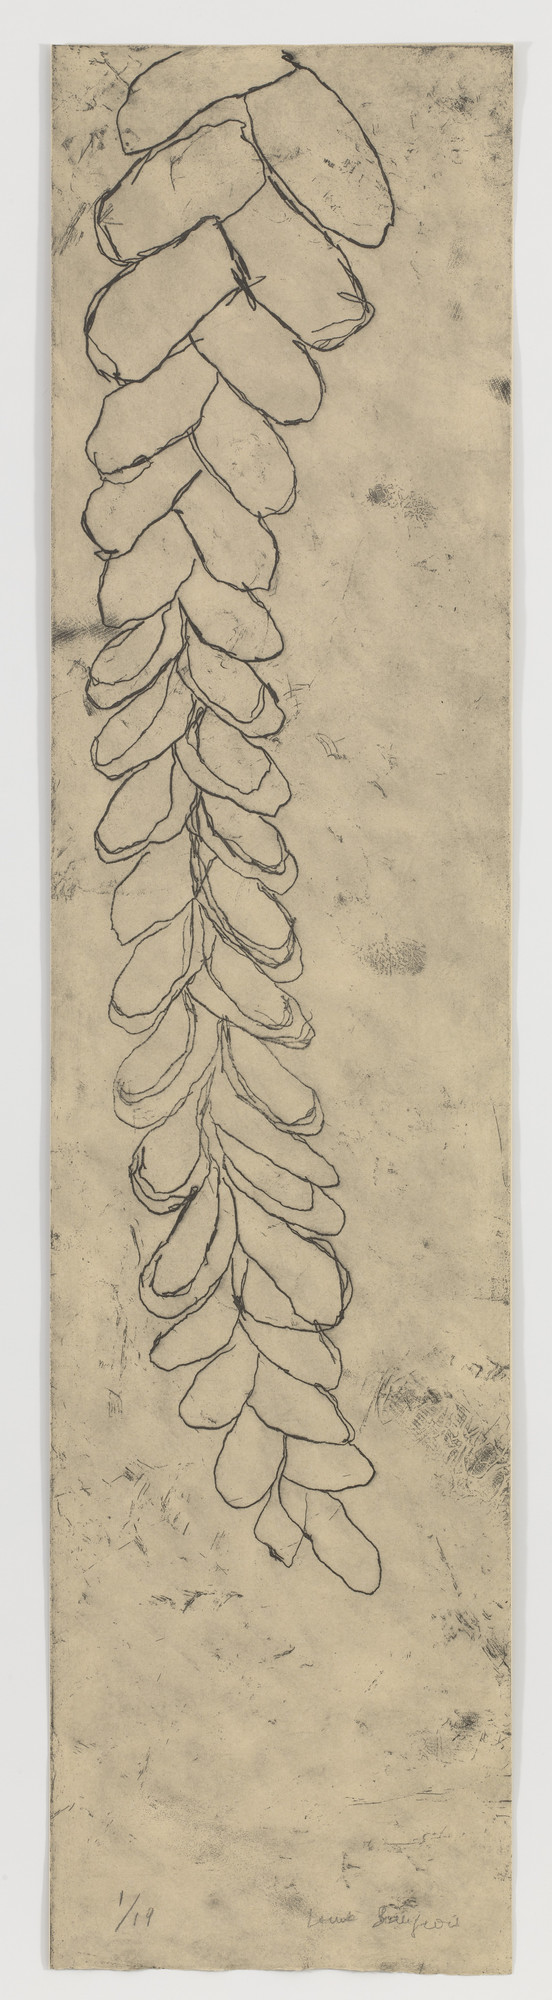 Louise Bourgeois. The Fall. 2007